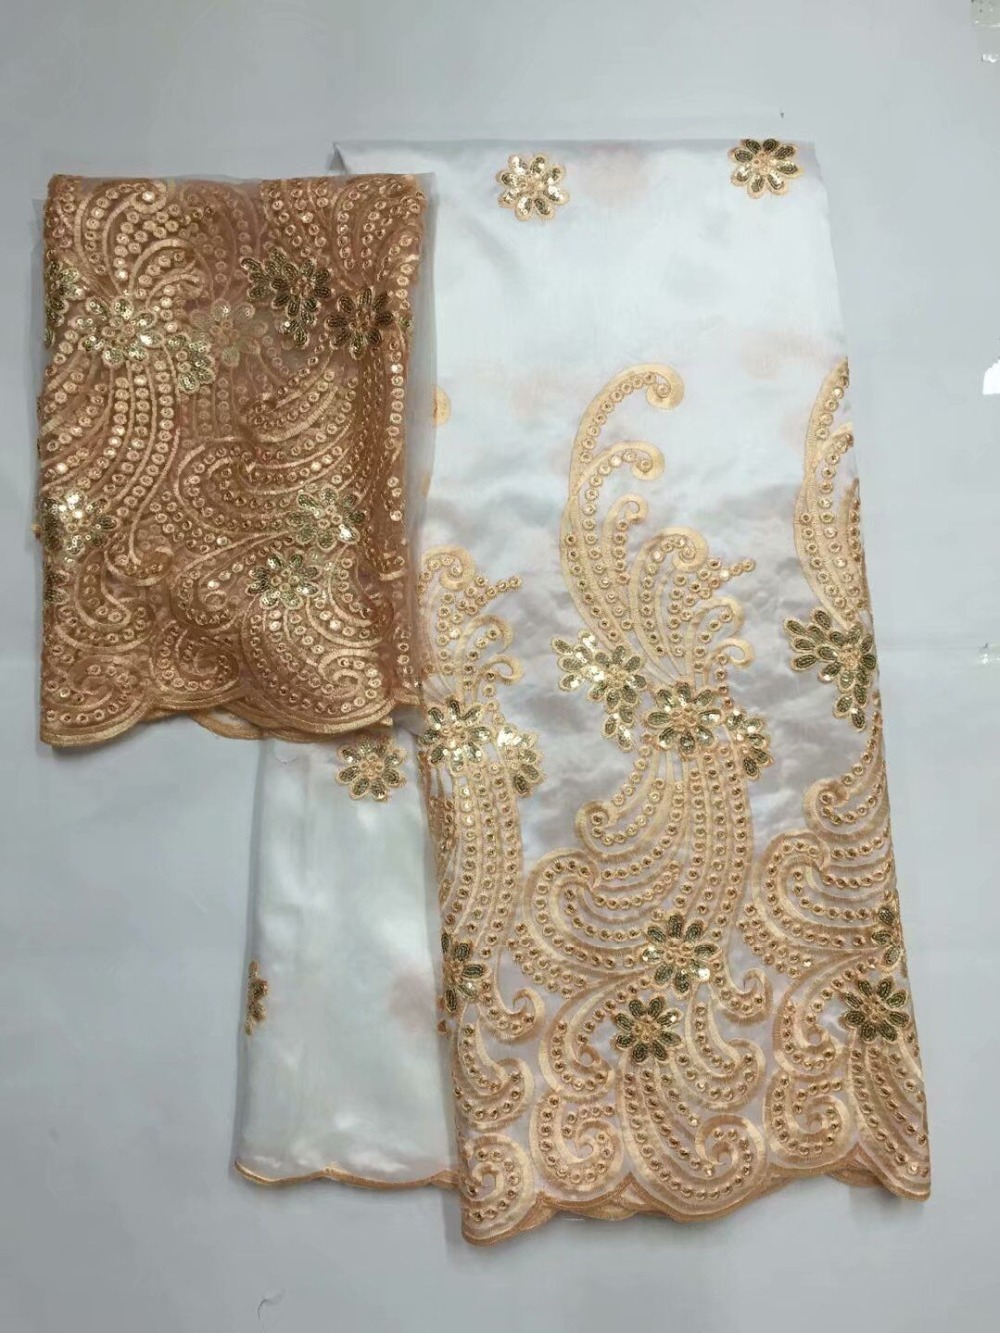 Raw Silk George Wrappers with Blouse Nigerian Lace Fabrics For Wedding with Beads 2018 Hojilou Nigerian George Sequin FabricRaw Silk George Wrappers with Blouse Nigerian Lace Fabrics For Wedding with Beads 2018 Hojilou Nigerian George Sequin Fabric